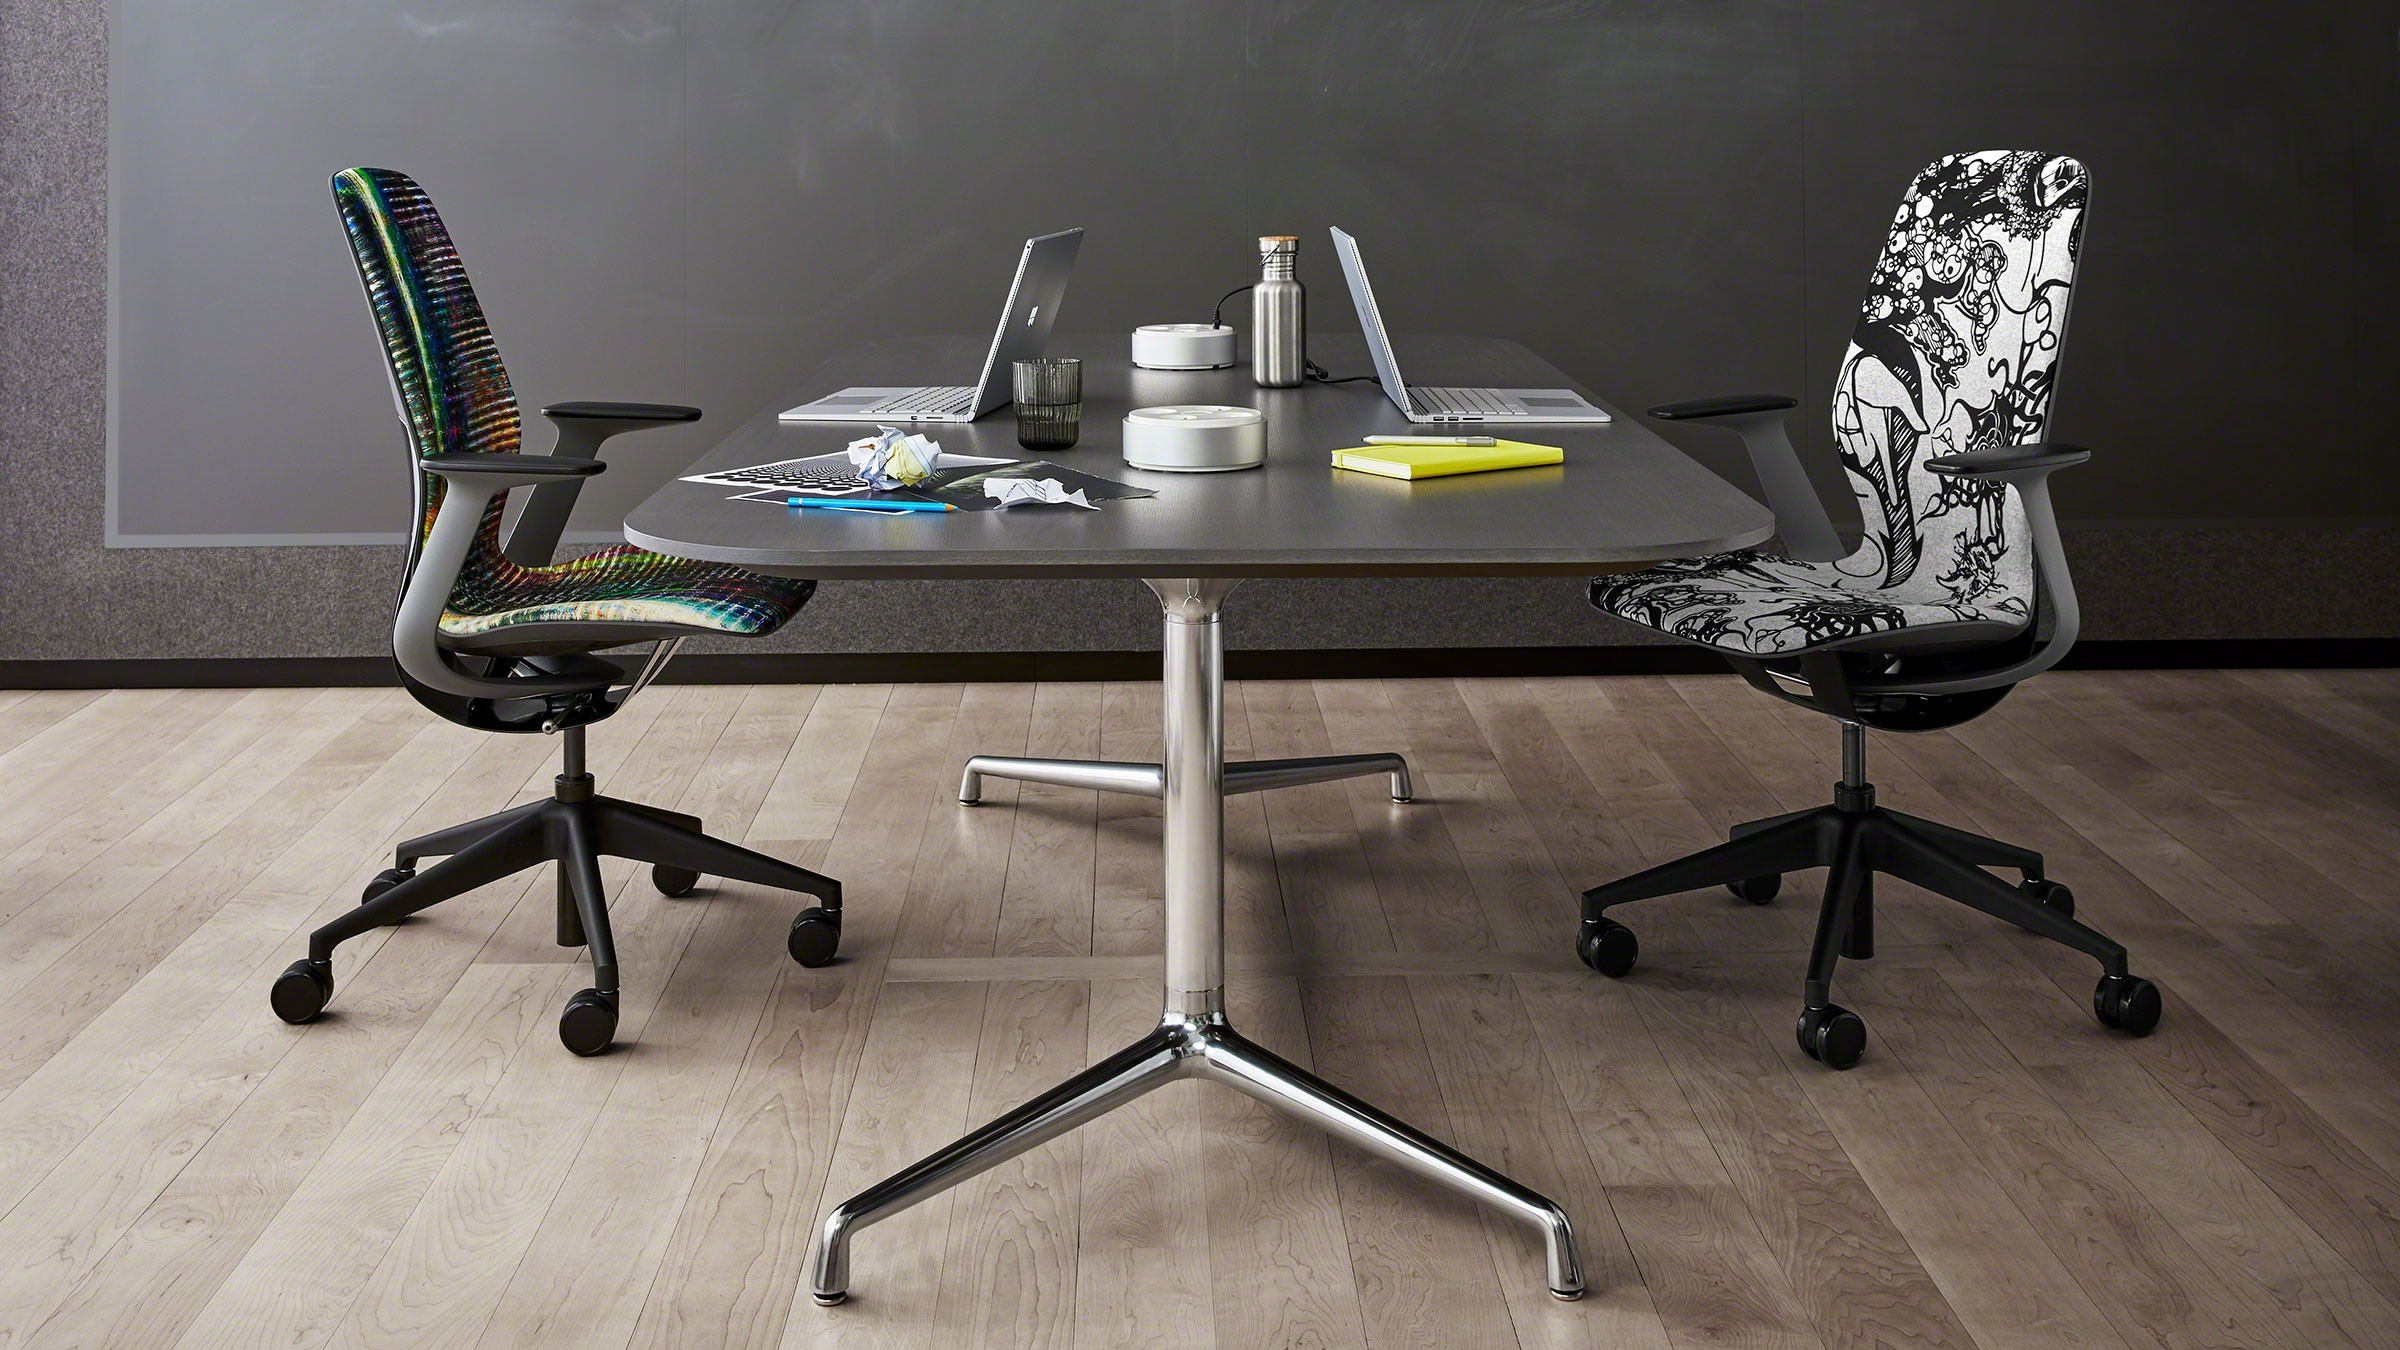 Silq Innovative And Collaborative Chair | Steelcase with regard to Chari Media Center Tables (Image 24 of 30)